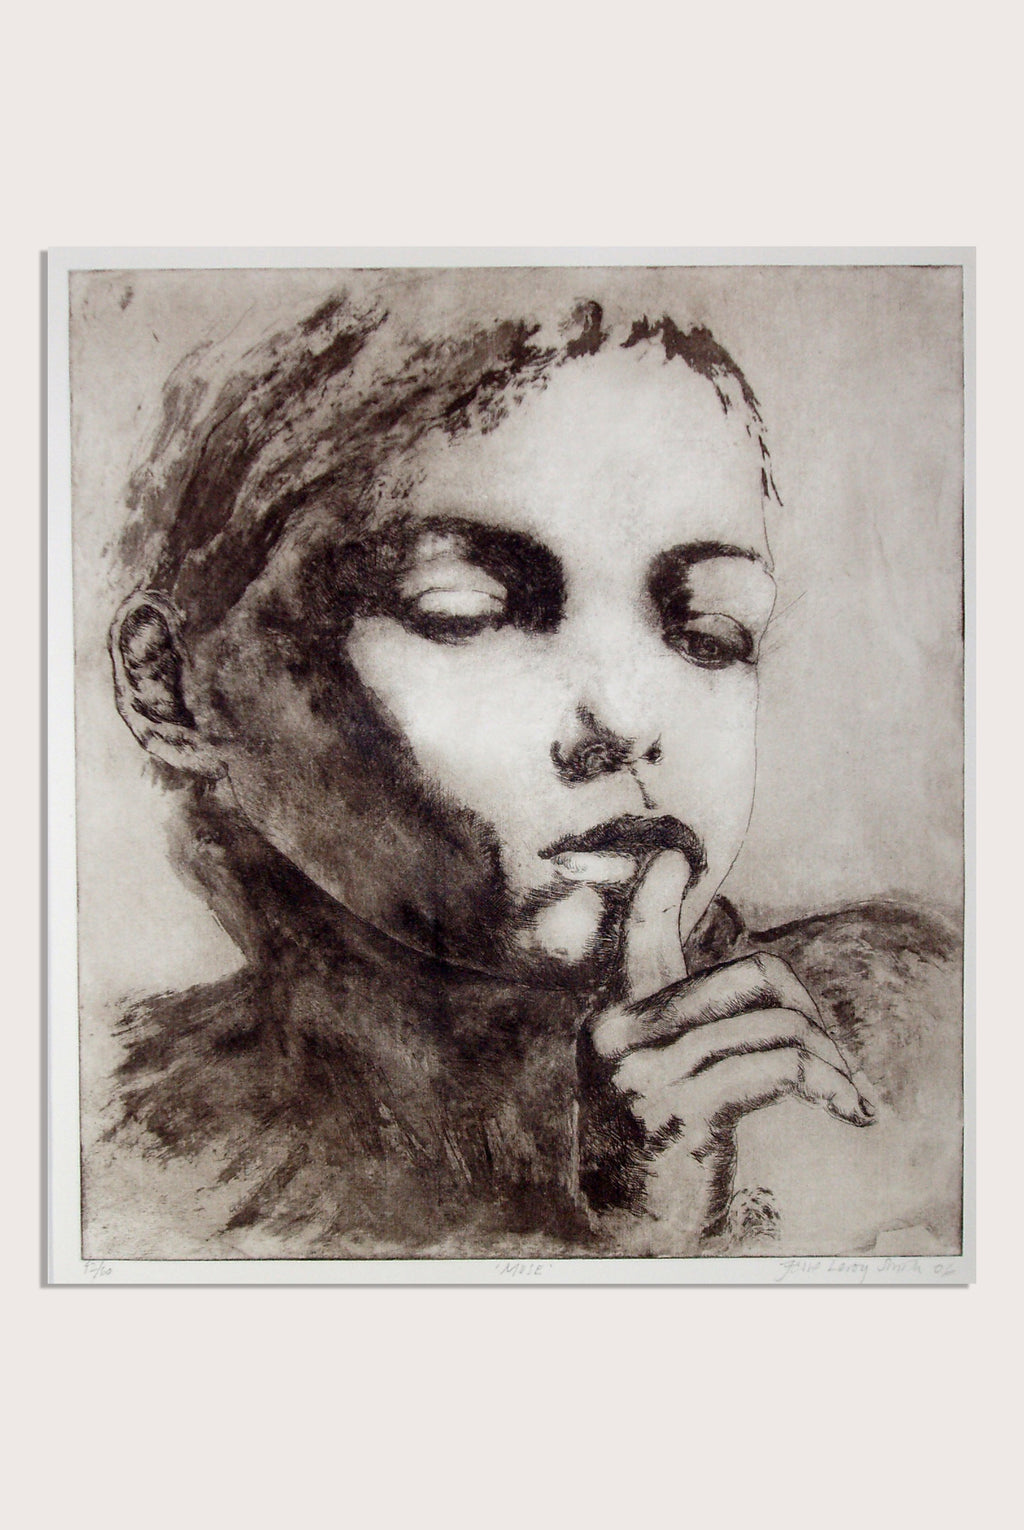 'Muse', a limited edition, figurative etching by contemporary artist Jesse Leroy Smith